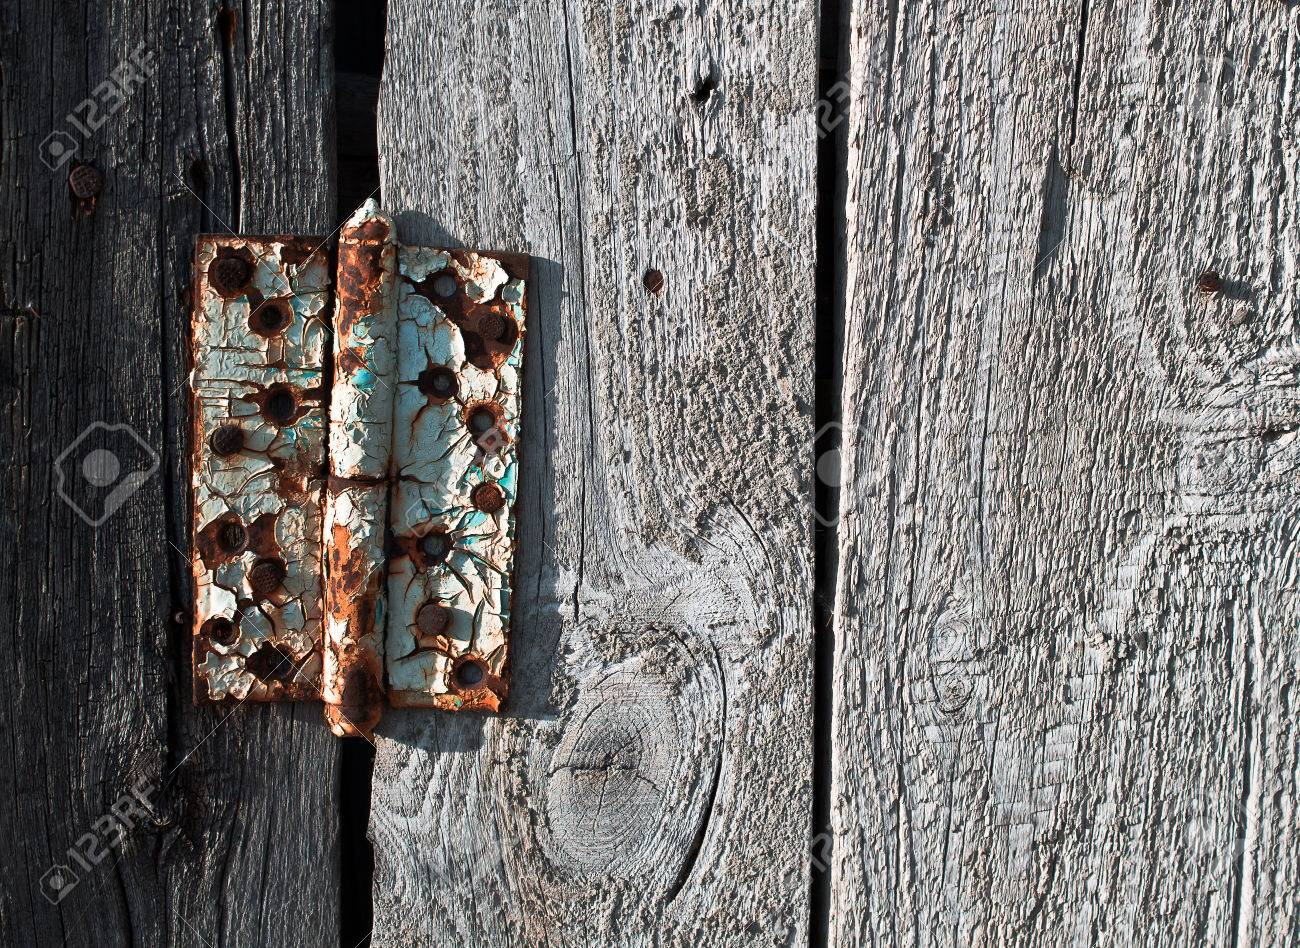 Rusty Door old rusty metal door hinge on wooden door stock photo, picture and